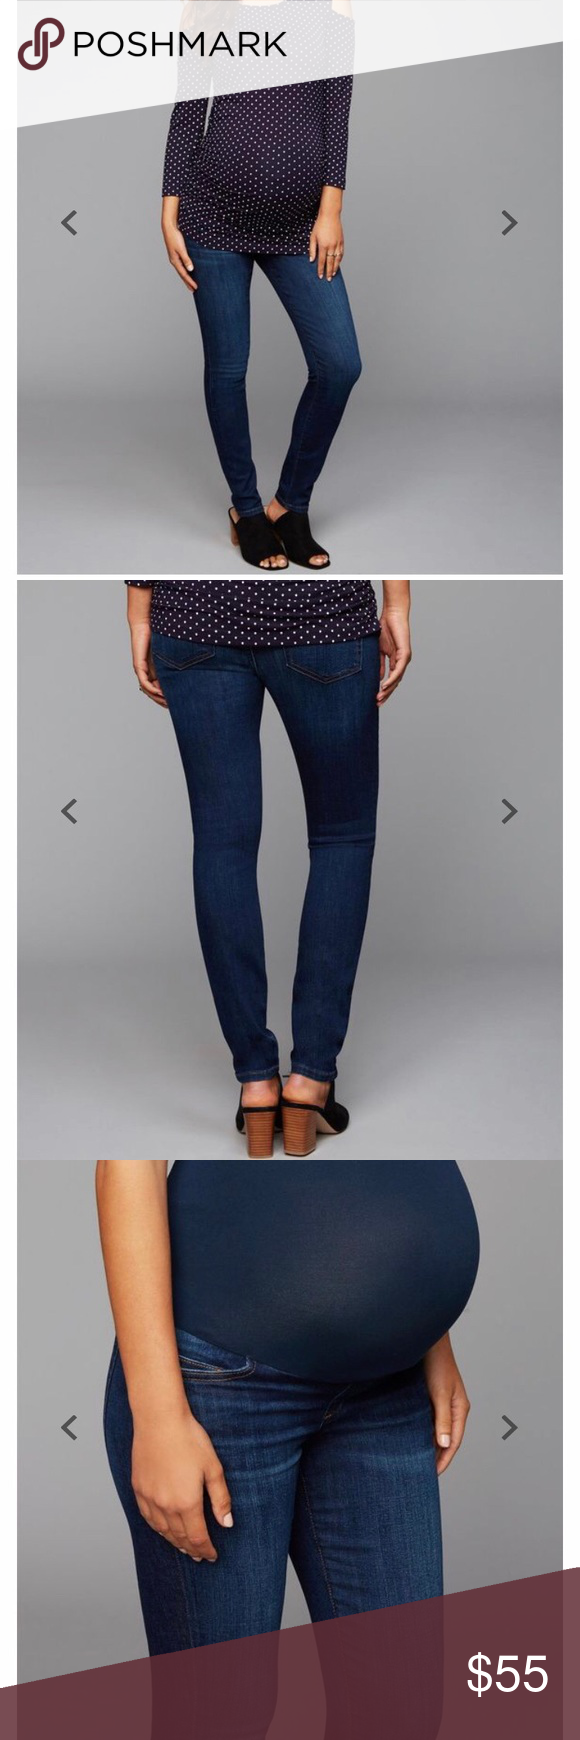 3b8f1c81ad2a0 Joe's Jeans Icon Skinny Ankle Maternity Joe's Jeans Icon Skinny Ankle  Maternity Size 27, but